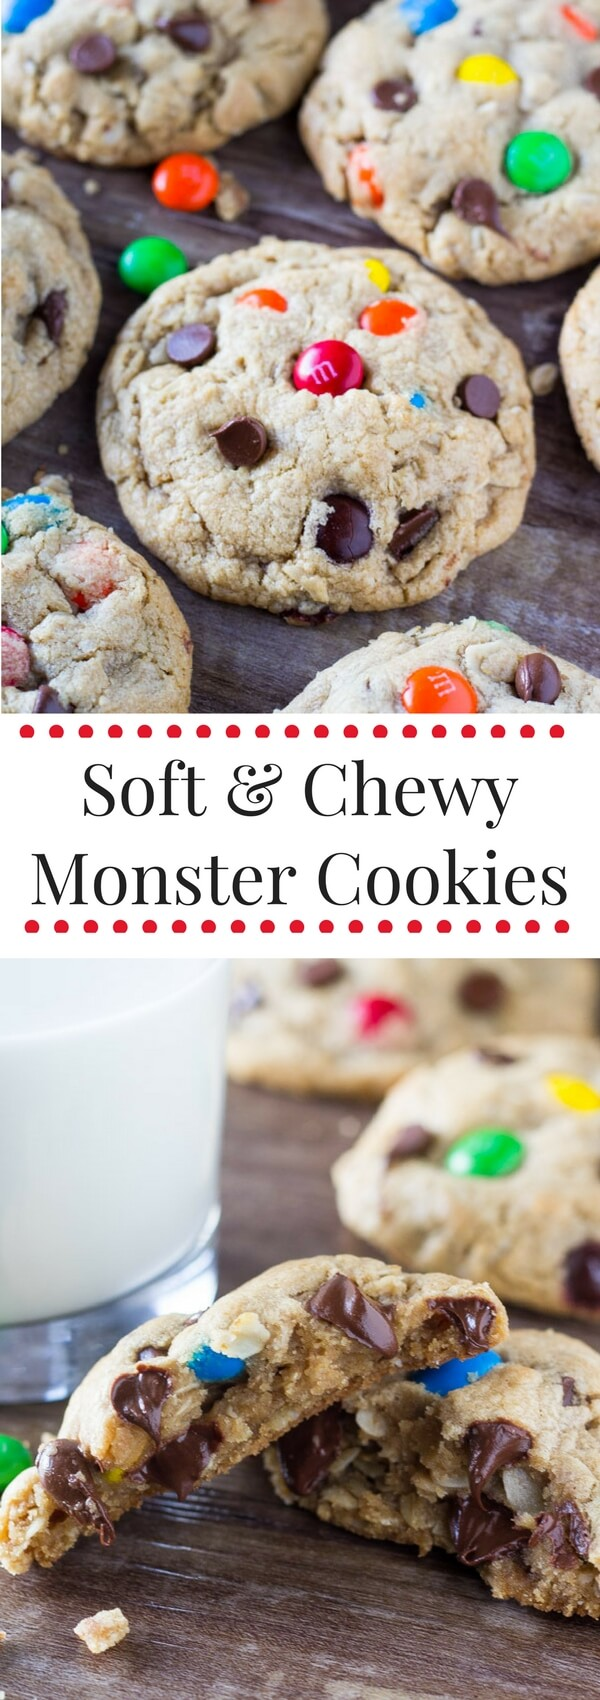 Soft and Chewy Monster Cookies are filled with peanut butter, chocolate chips, oatmeal AND M&Ms. These GIANT cookies are everything